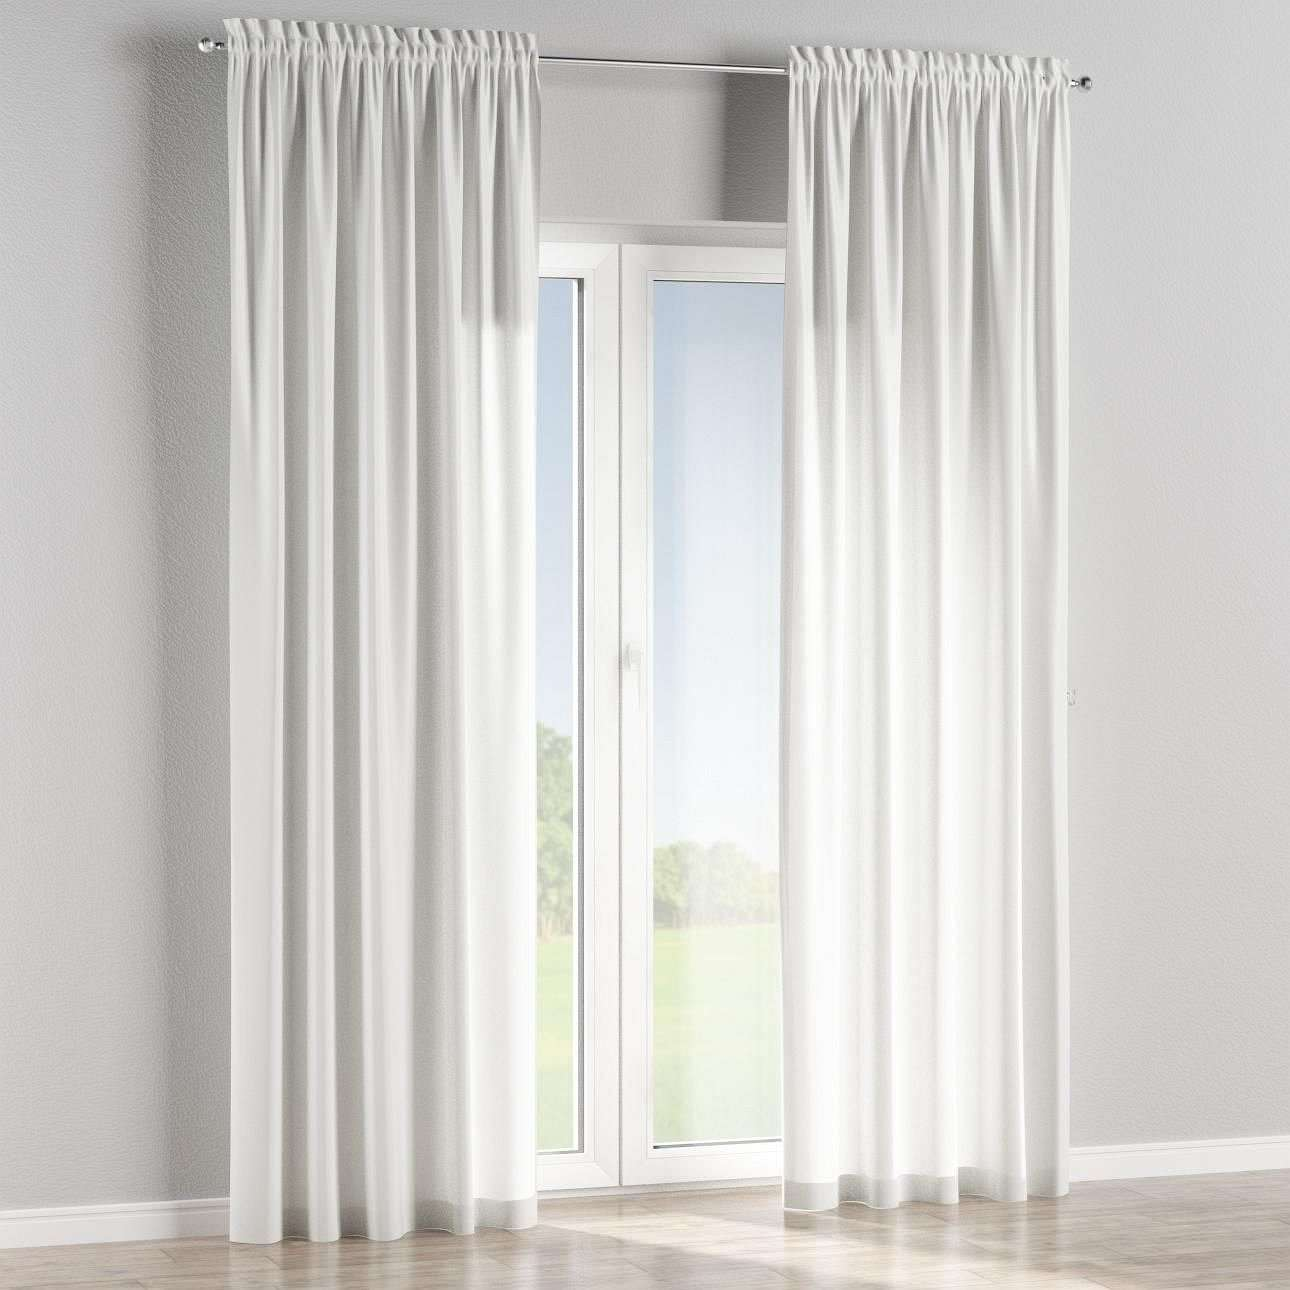 Slot and frill curtains in collection SALE, fabric: 138-17